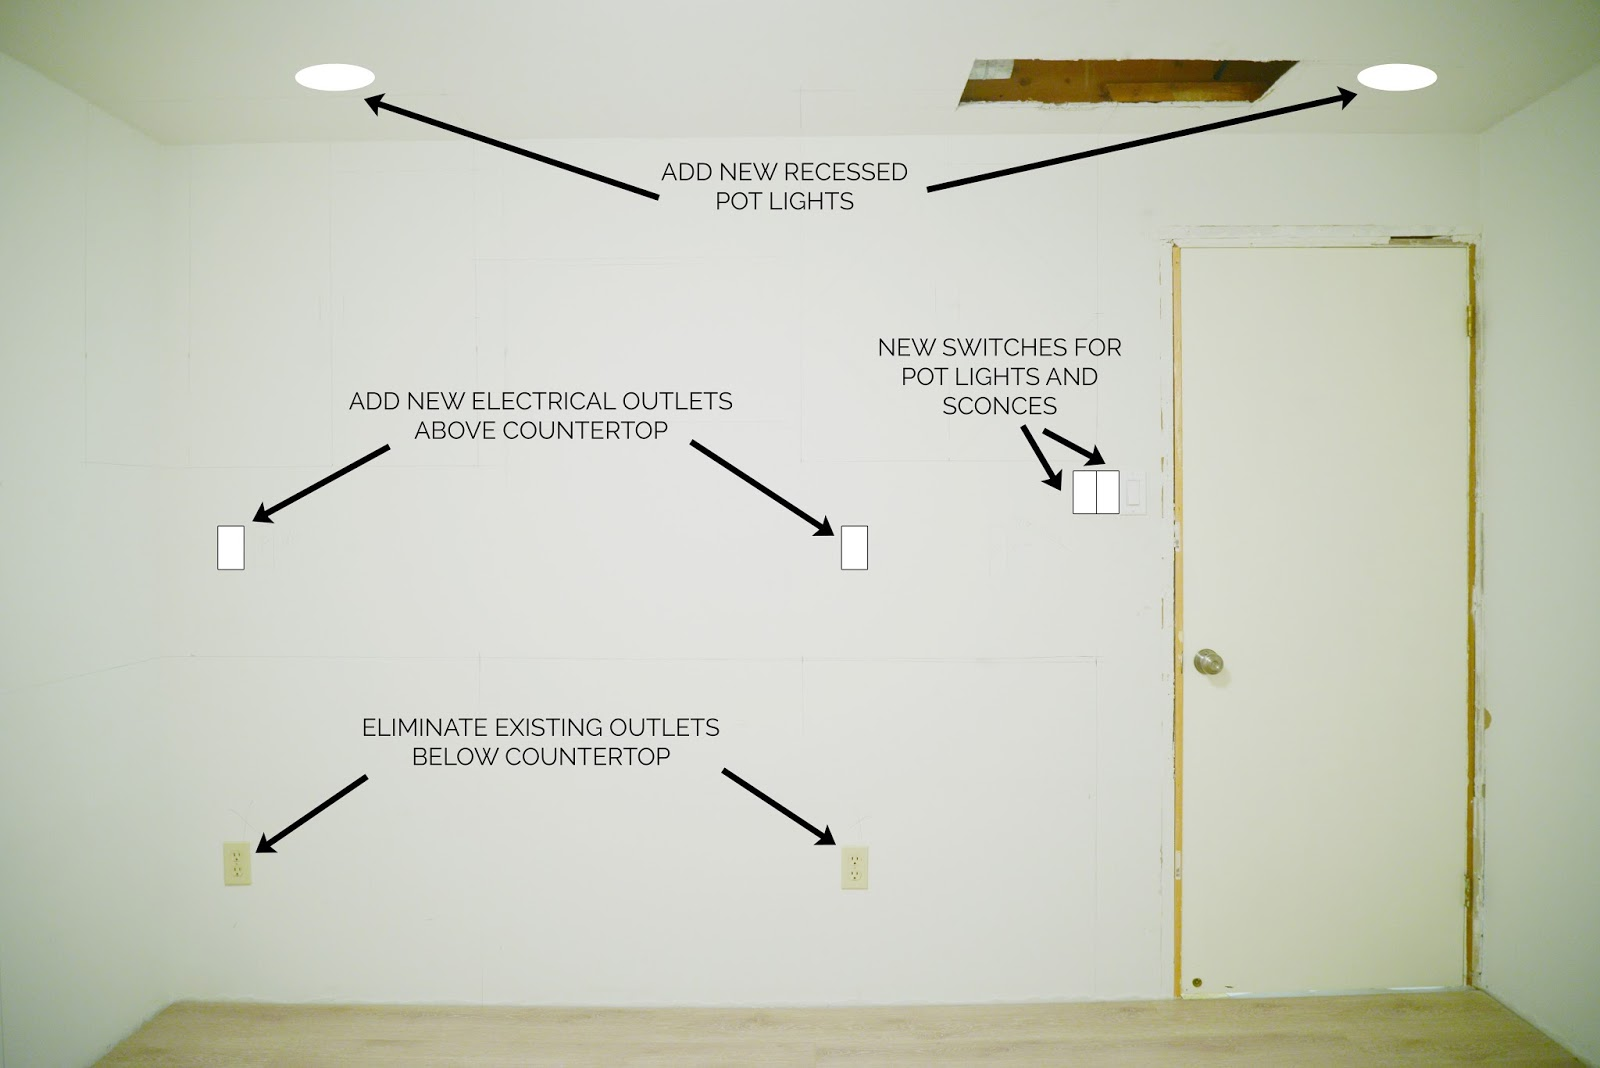 craft room electrical plan considerations | Ramblingrenovators.ca | #ProjectCraftsDept